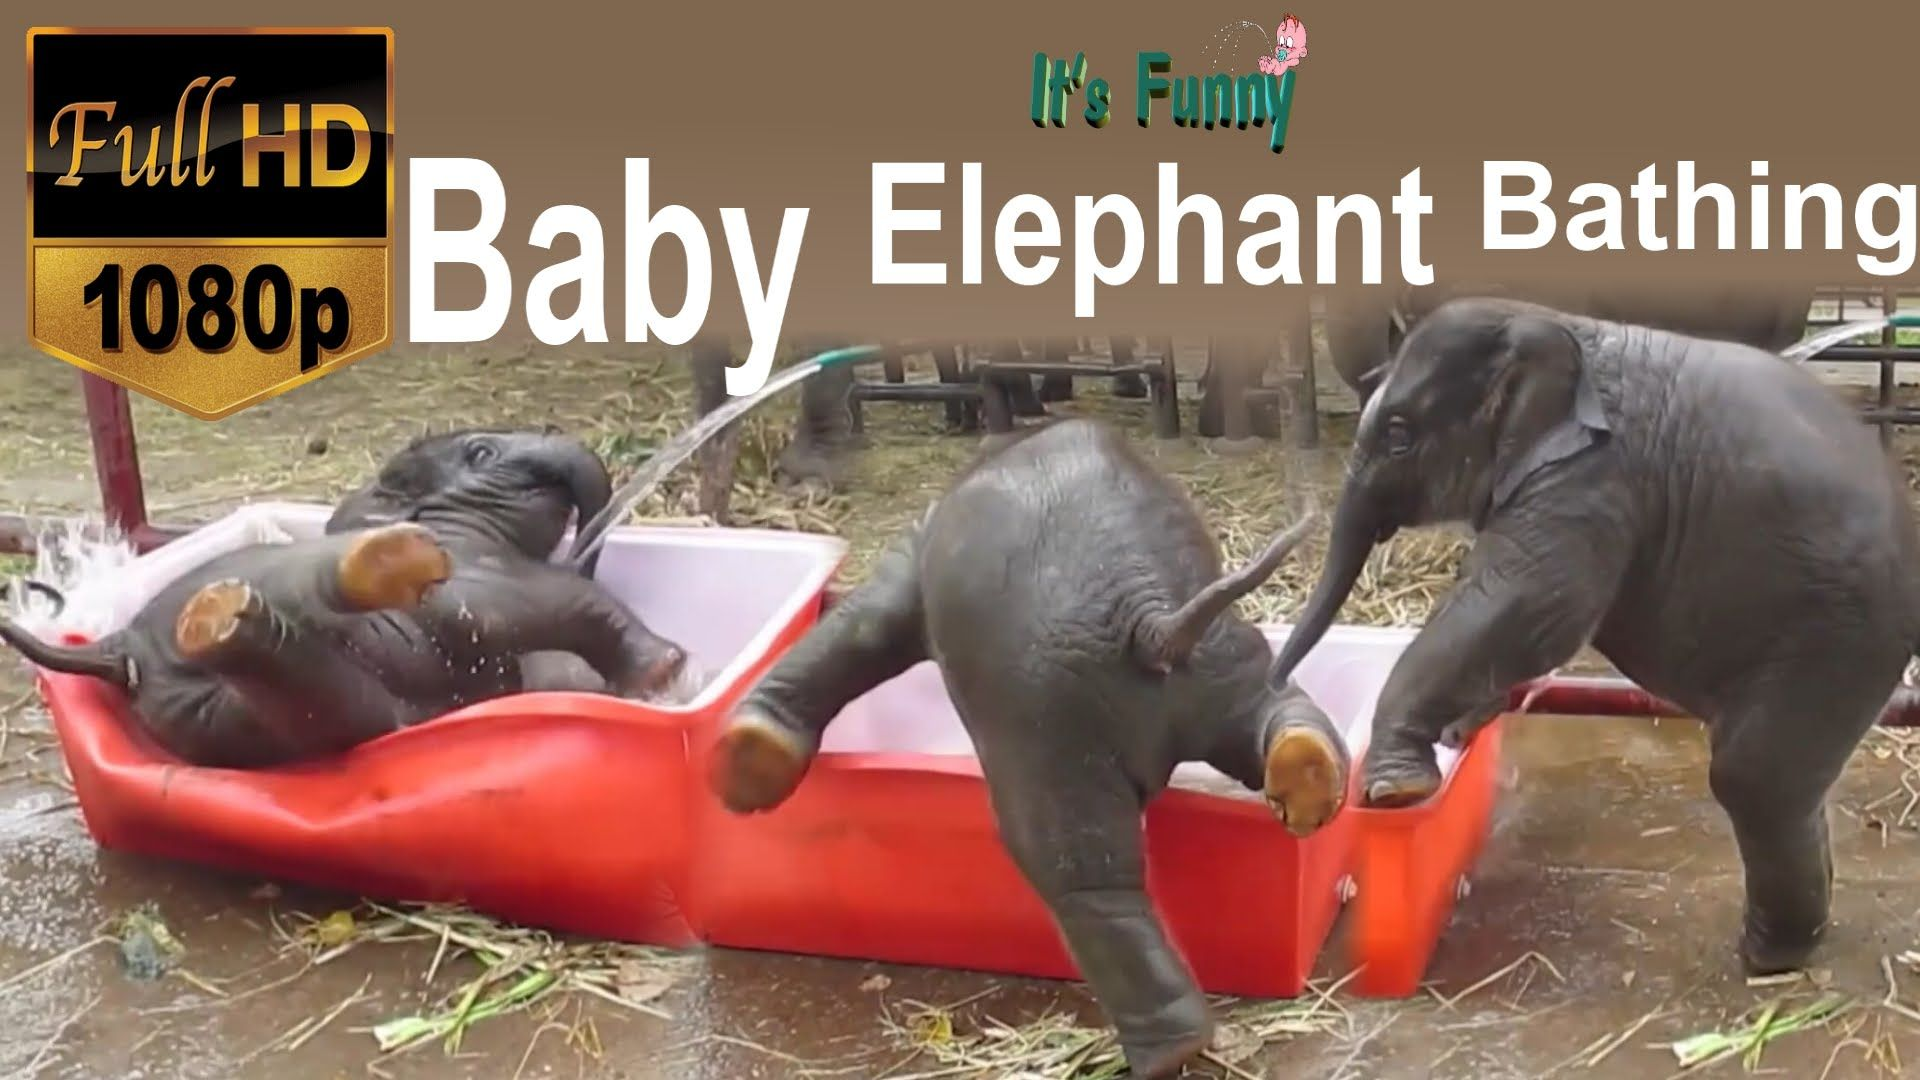 funny baby elephant bathing - hd - 1080p | video's | pinterest